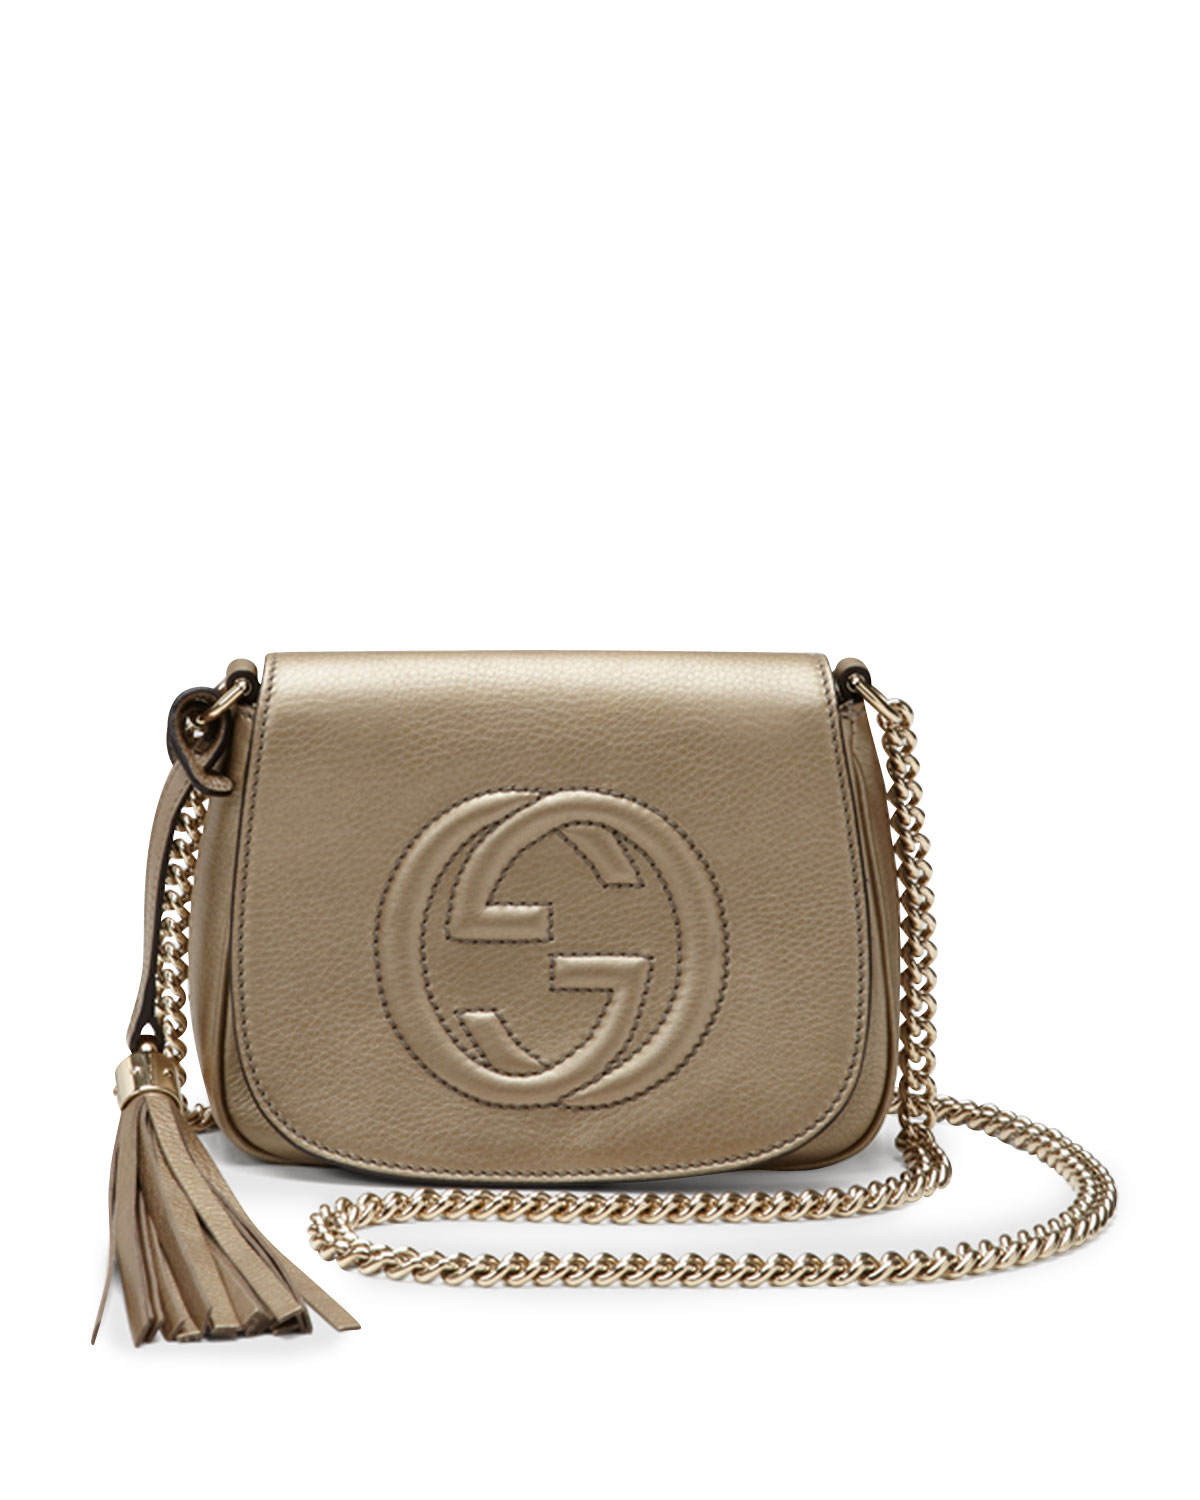 Gucci Soho Metallic Leather Chain Crossbody Bag In Natural